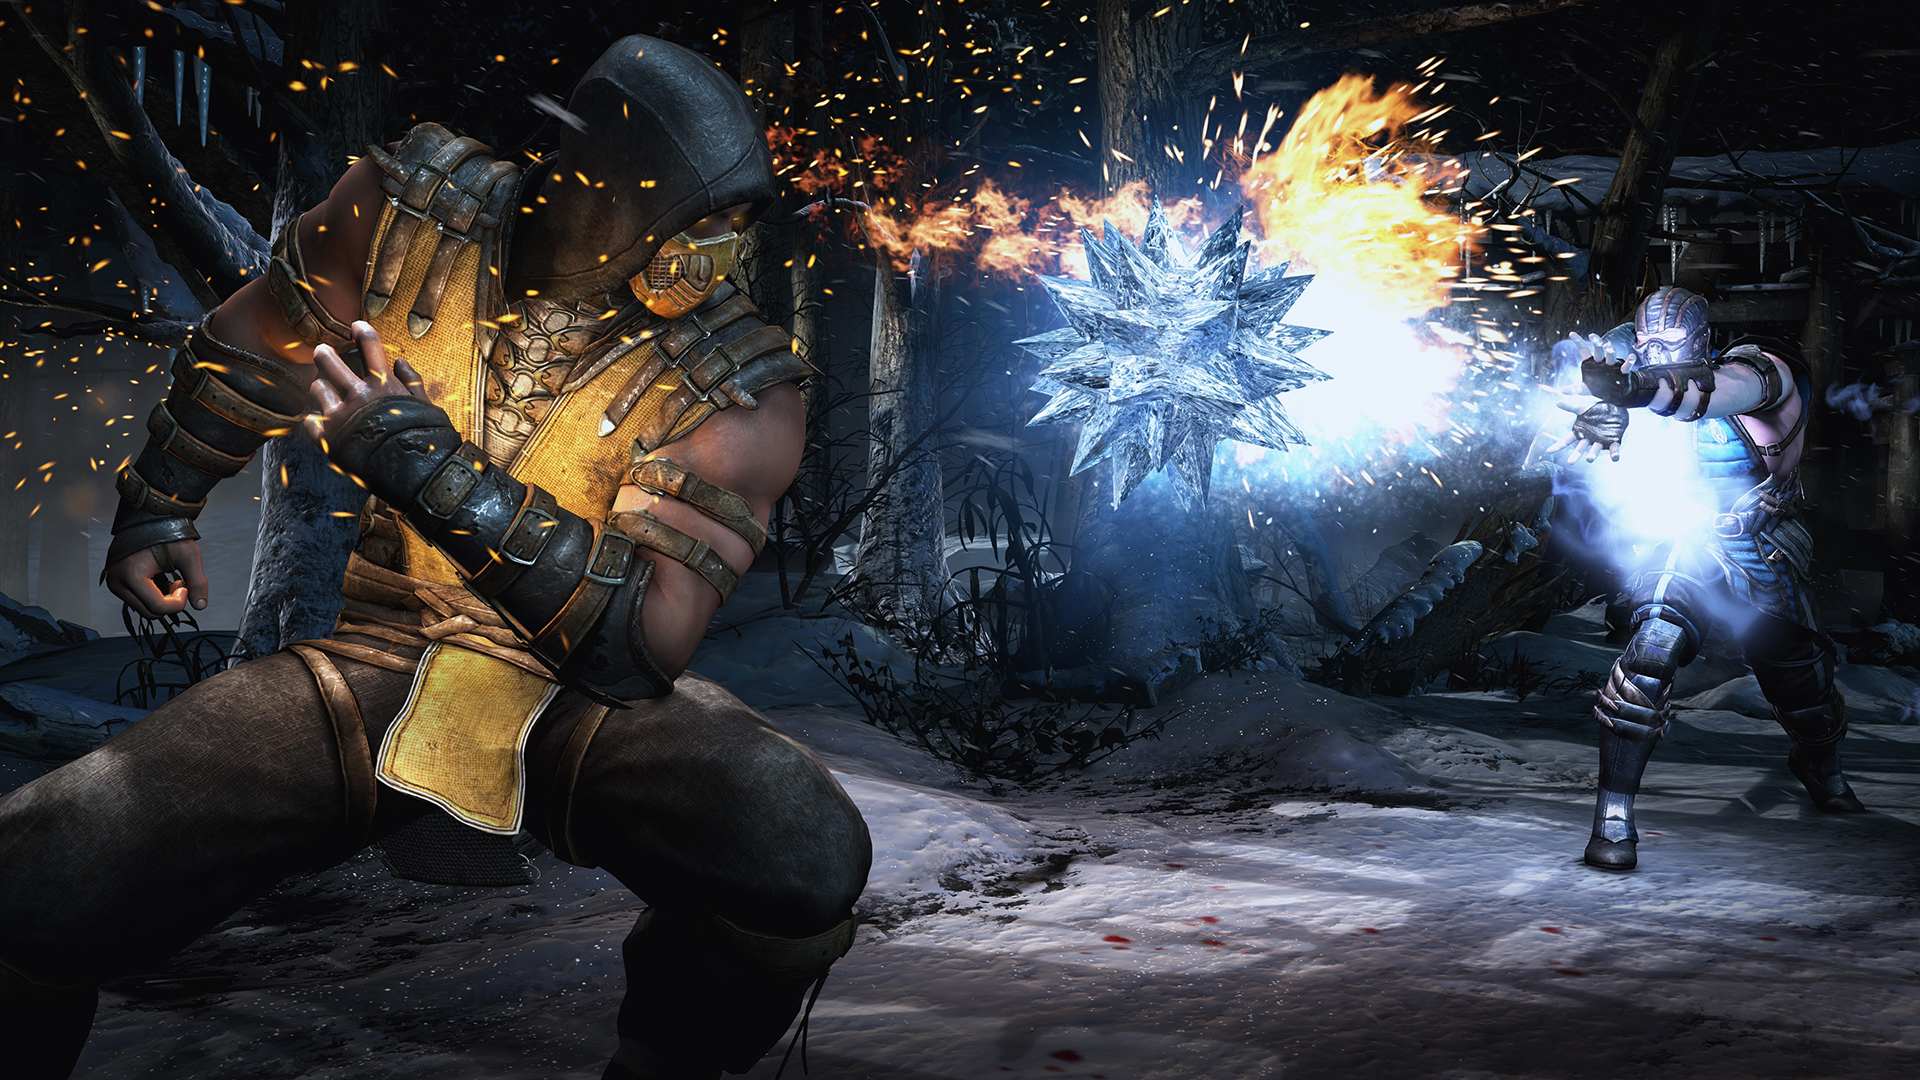 Mortal Kombat X Screenshots Artwork Gallery Video Games Blogger